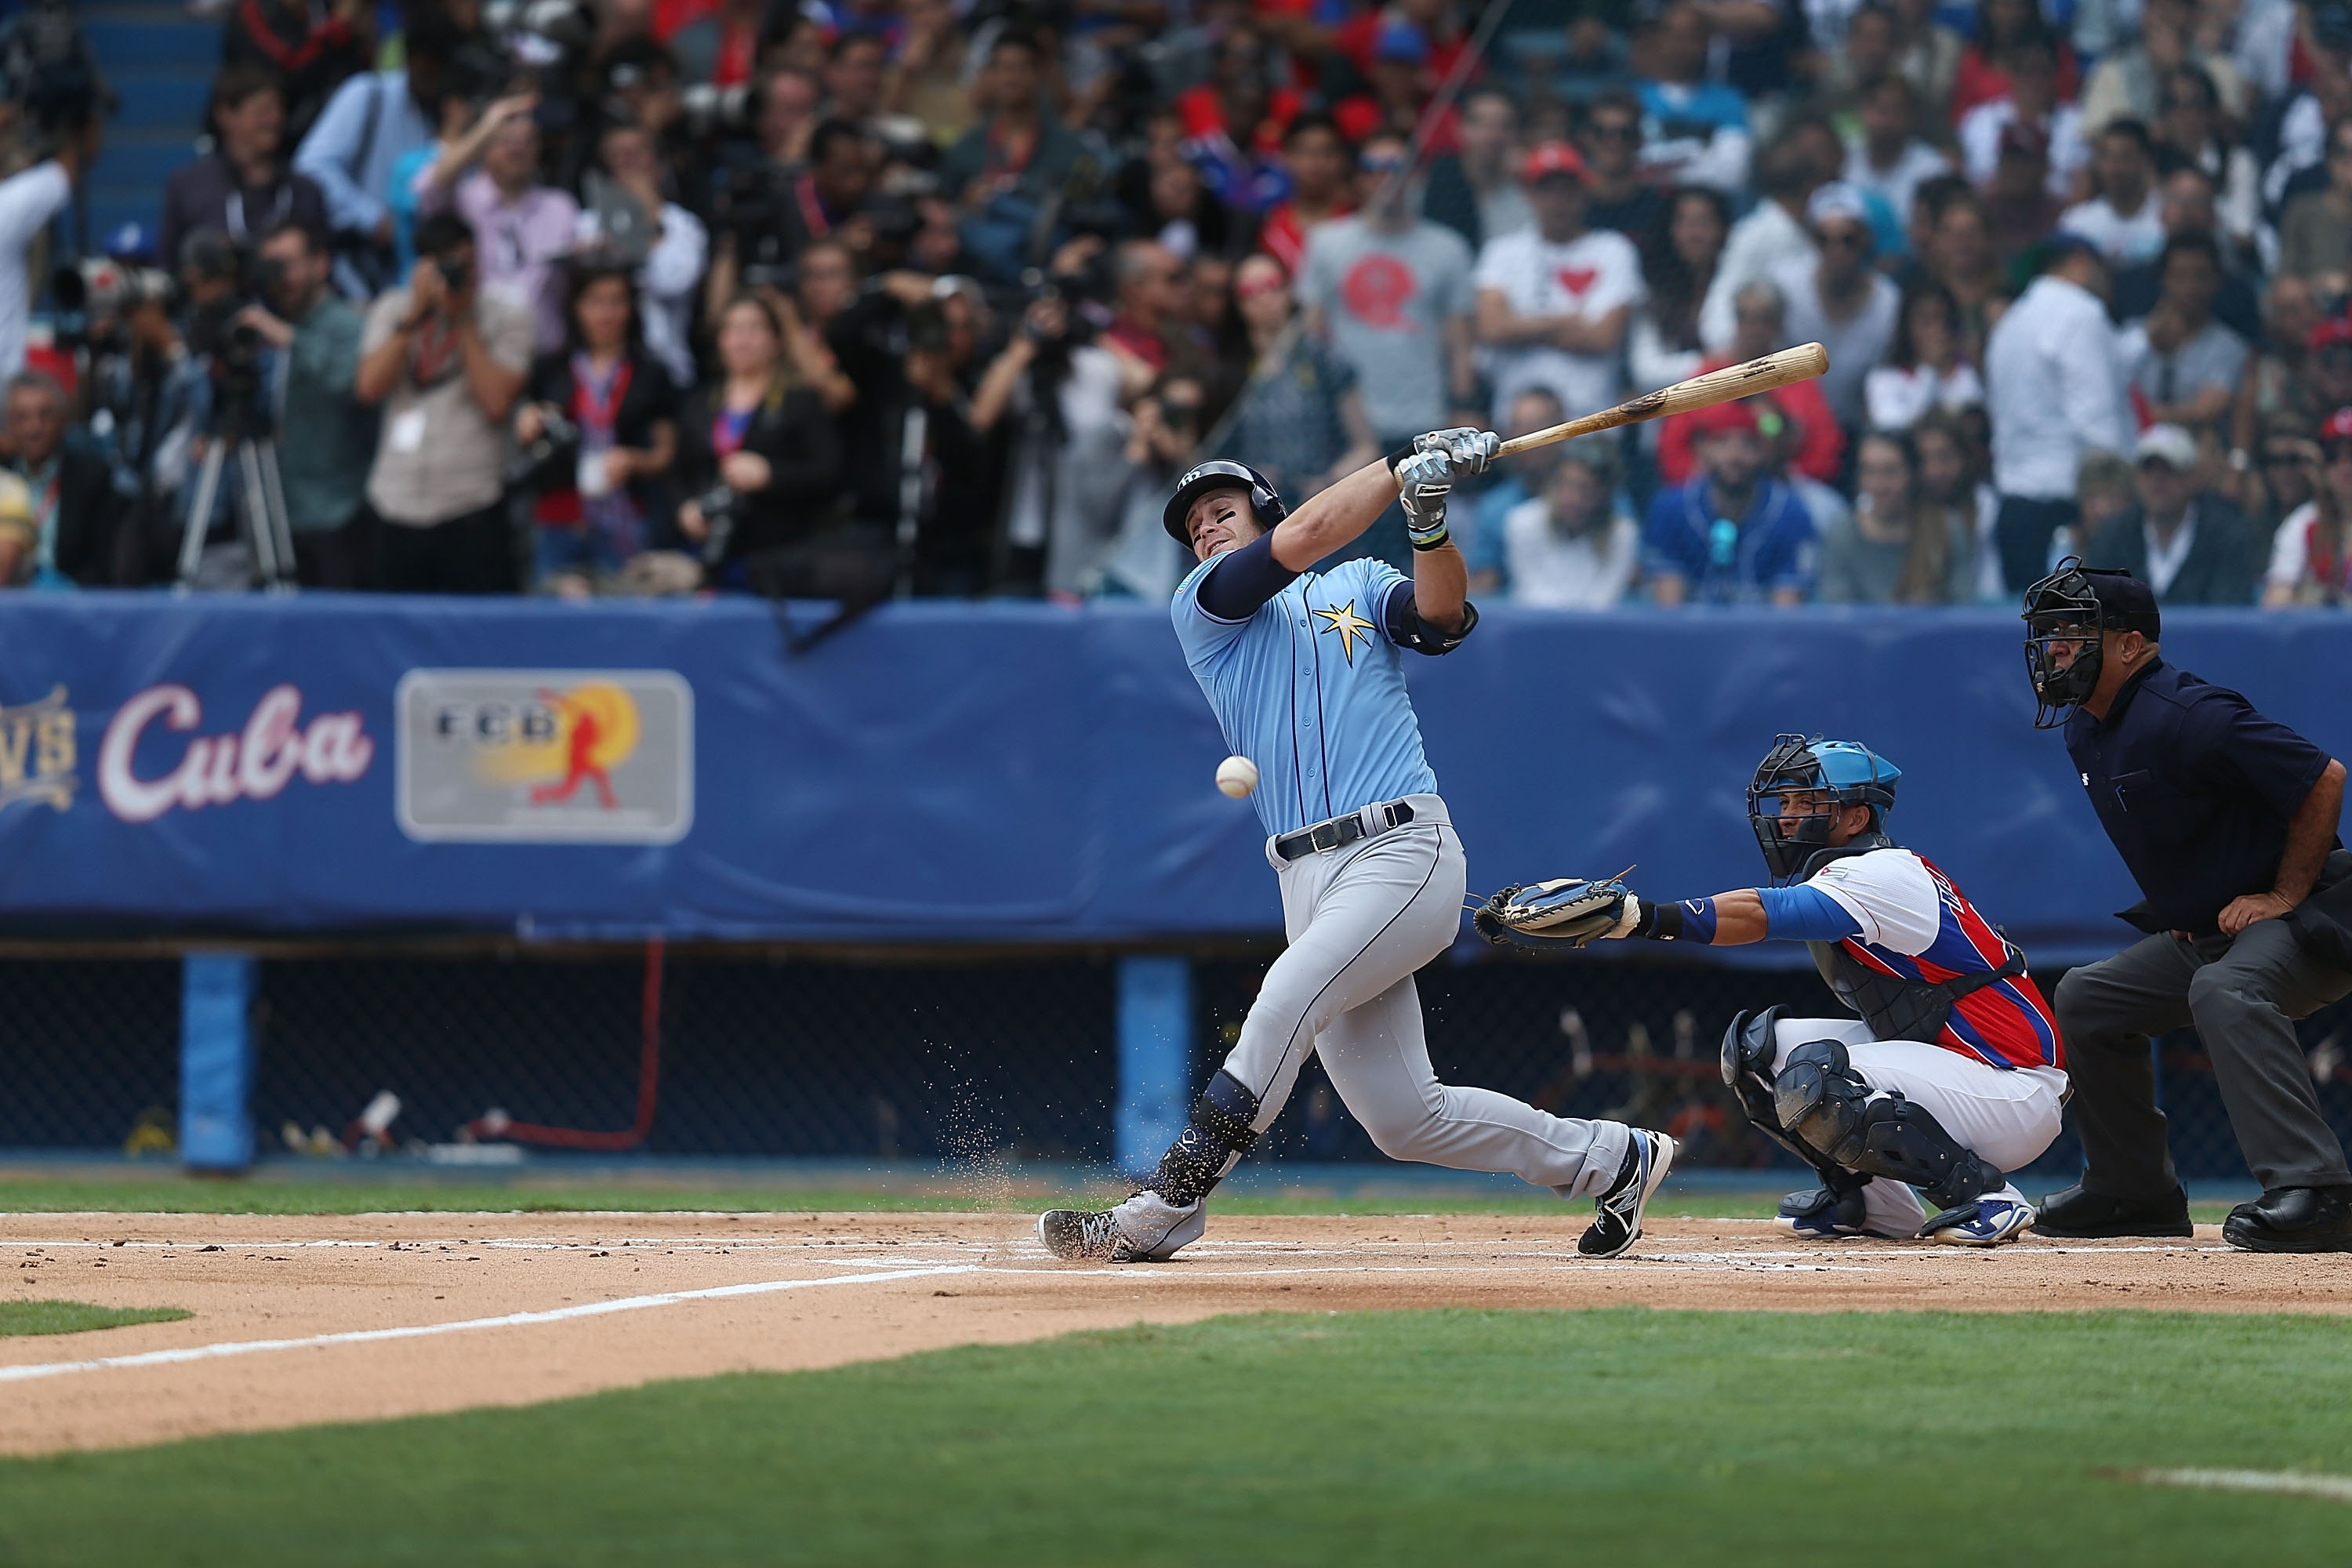 Tampa Bay's Dayron Varona, who defected from Cuba in 2013, takes a swing during the exhibition game between the Cuban national team and the Rays Tuesday in Havana.